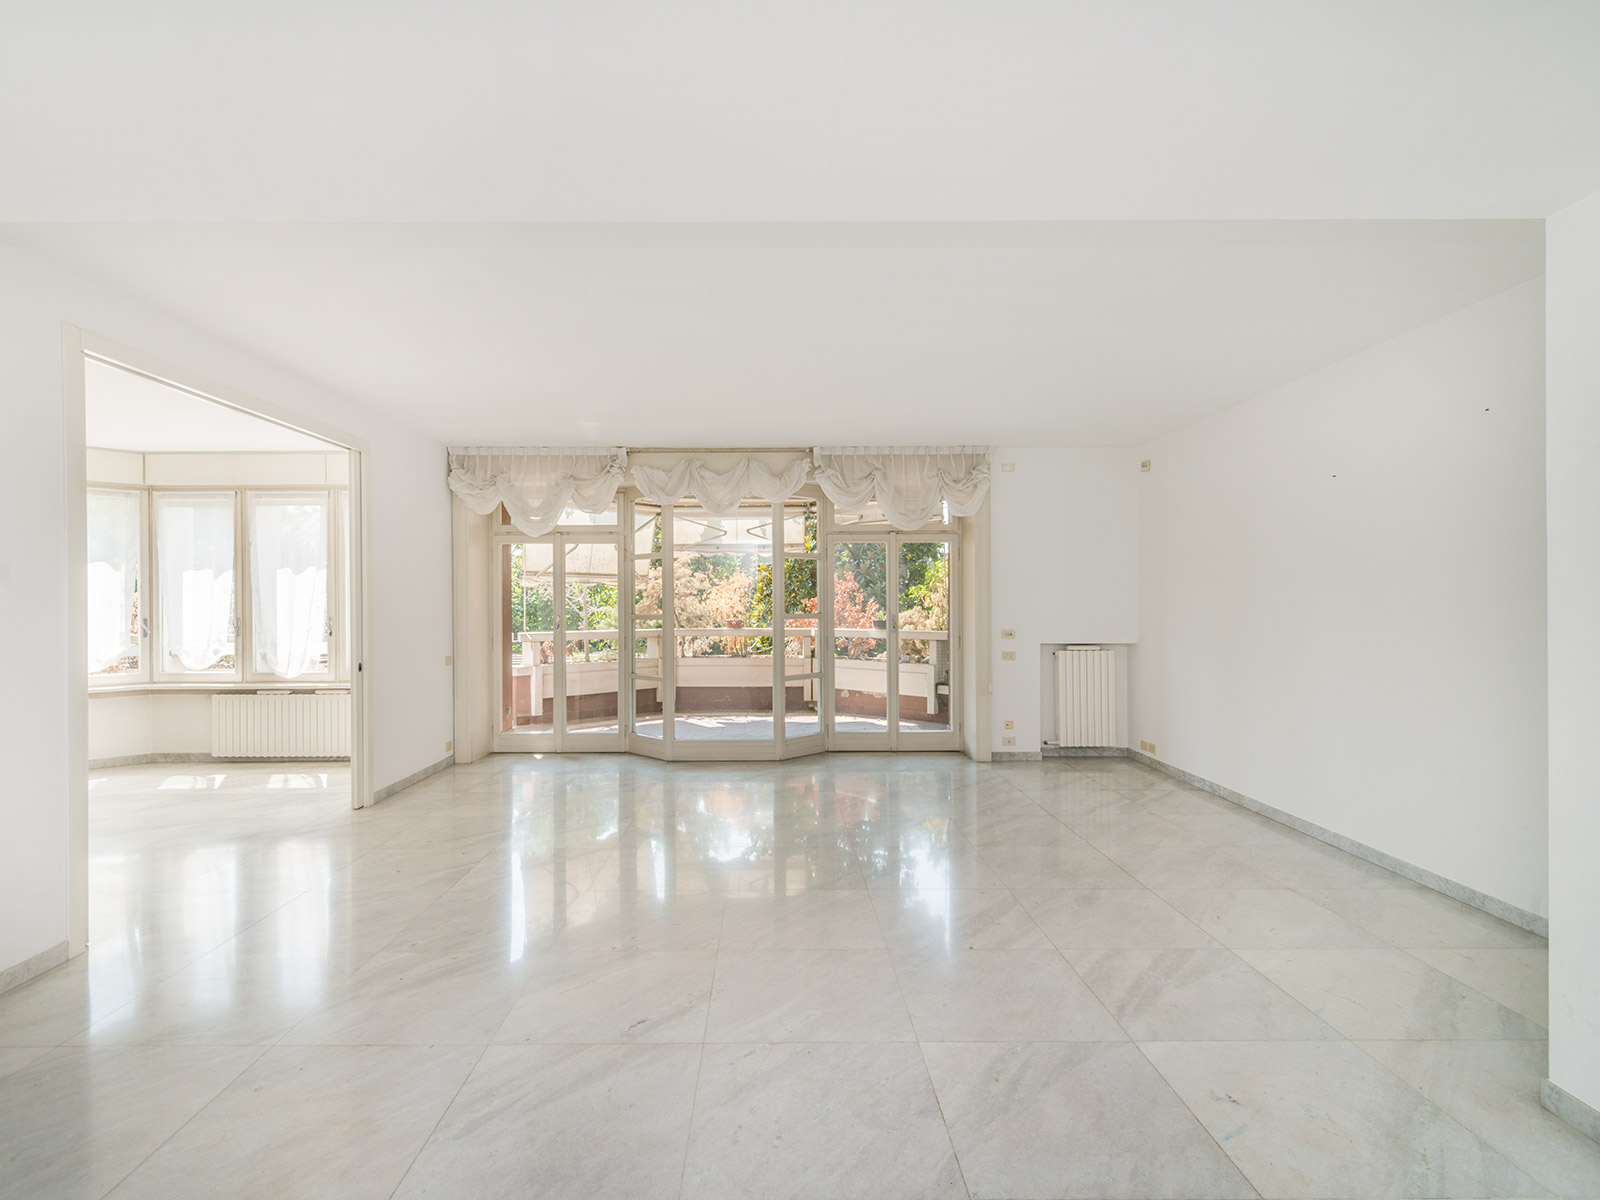 Additional photo for property listing at Discreet home with terraces in San Siro Via Ippodromo Milano, Milan 20121 Italia